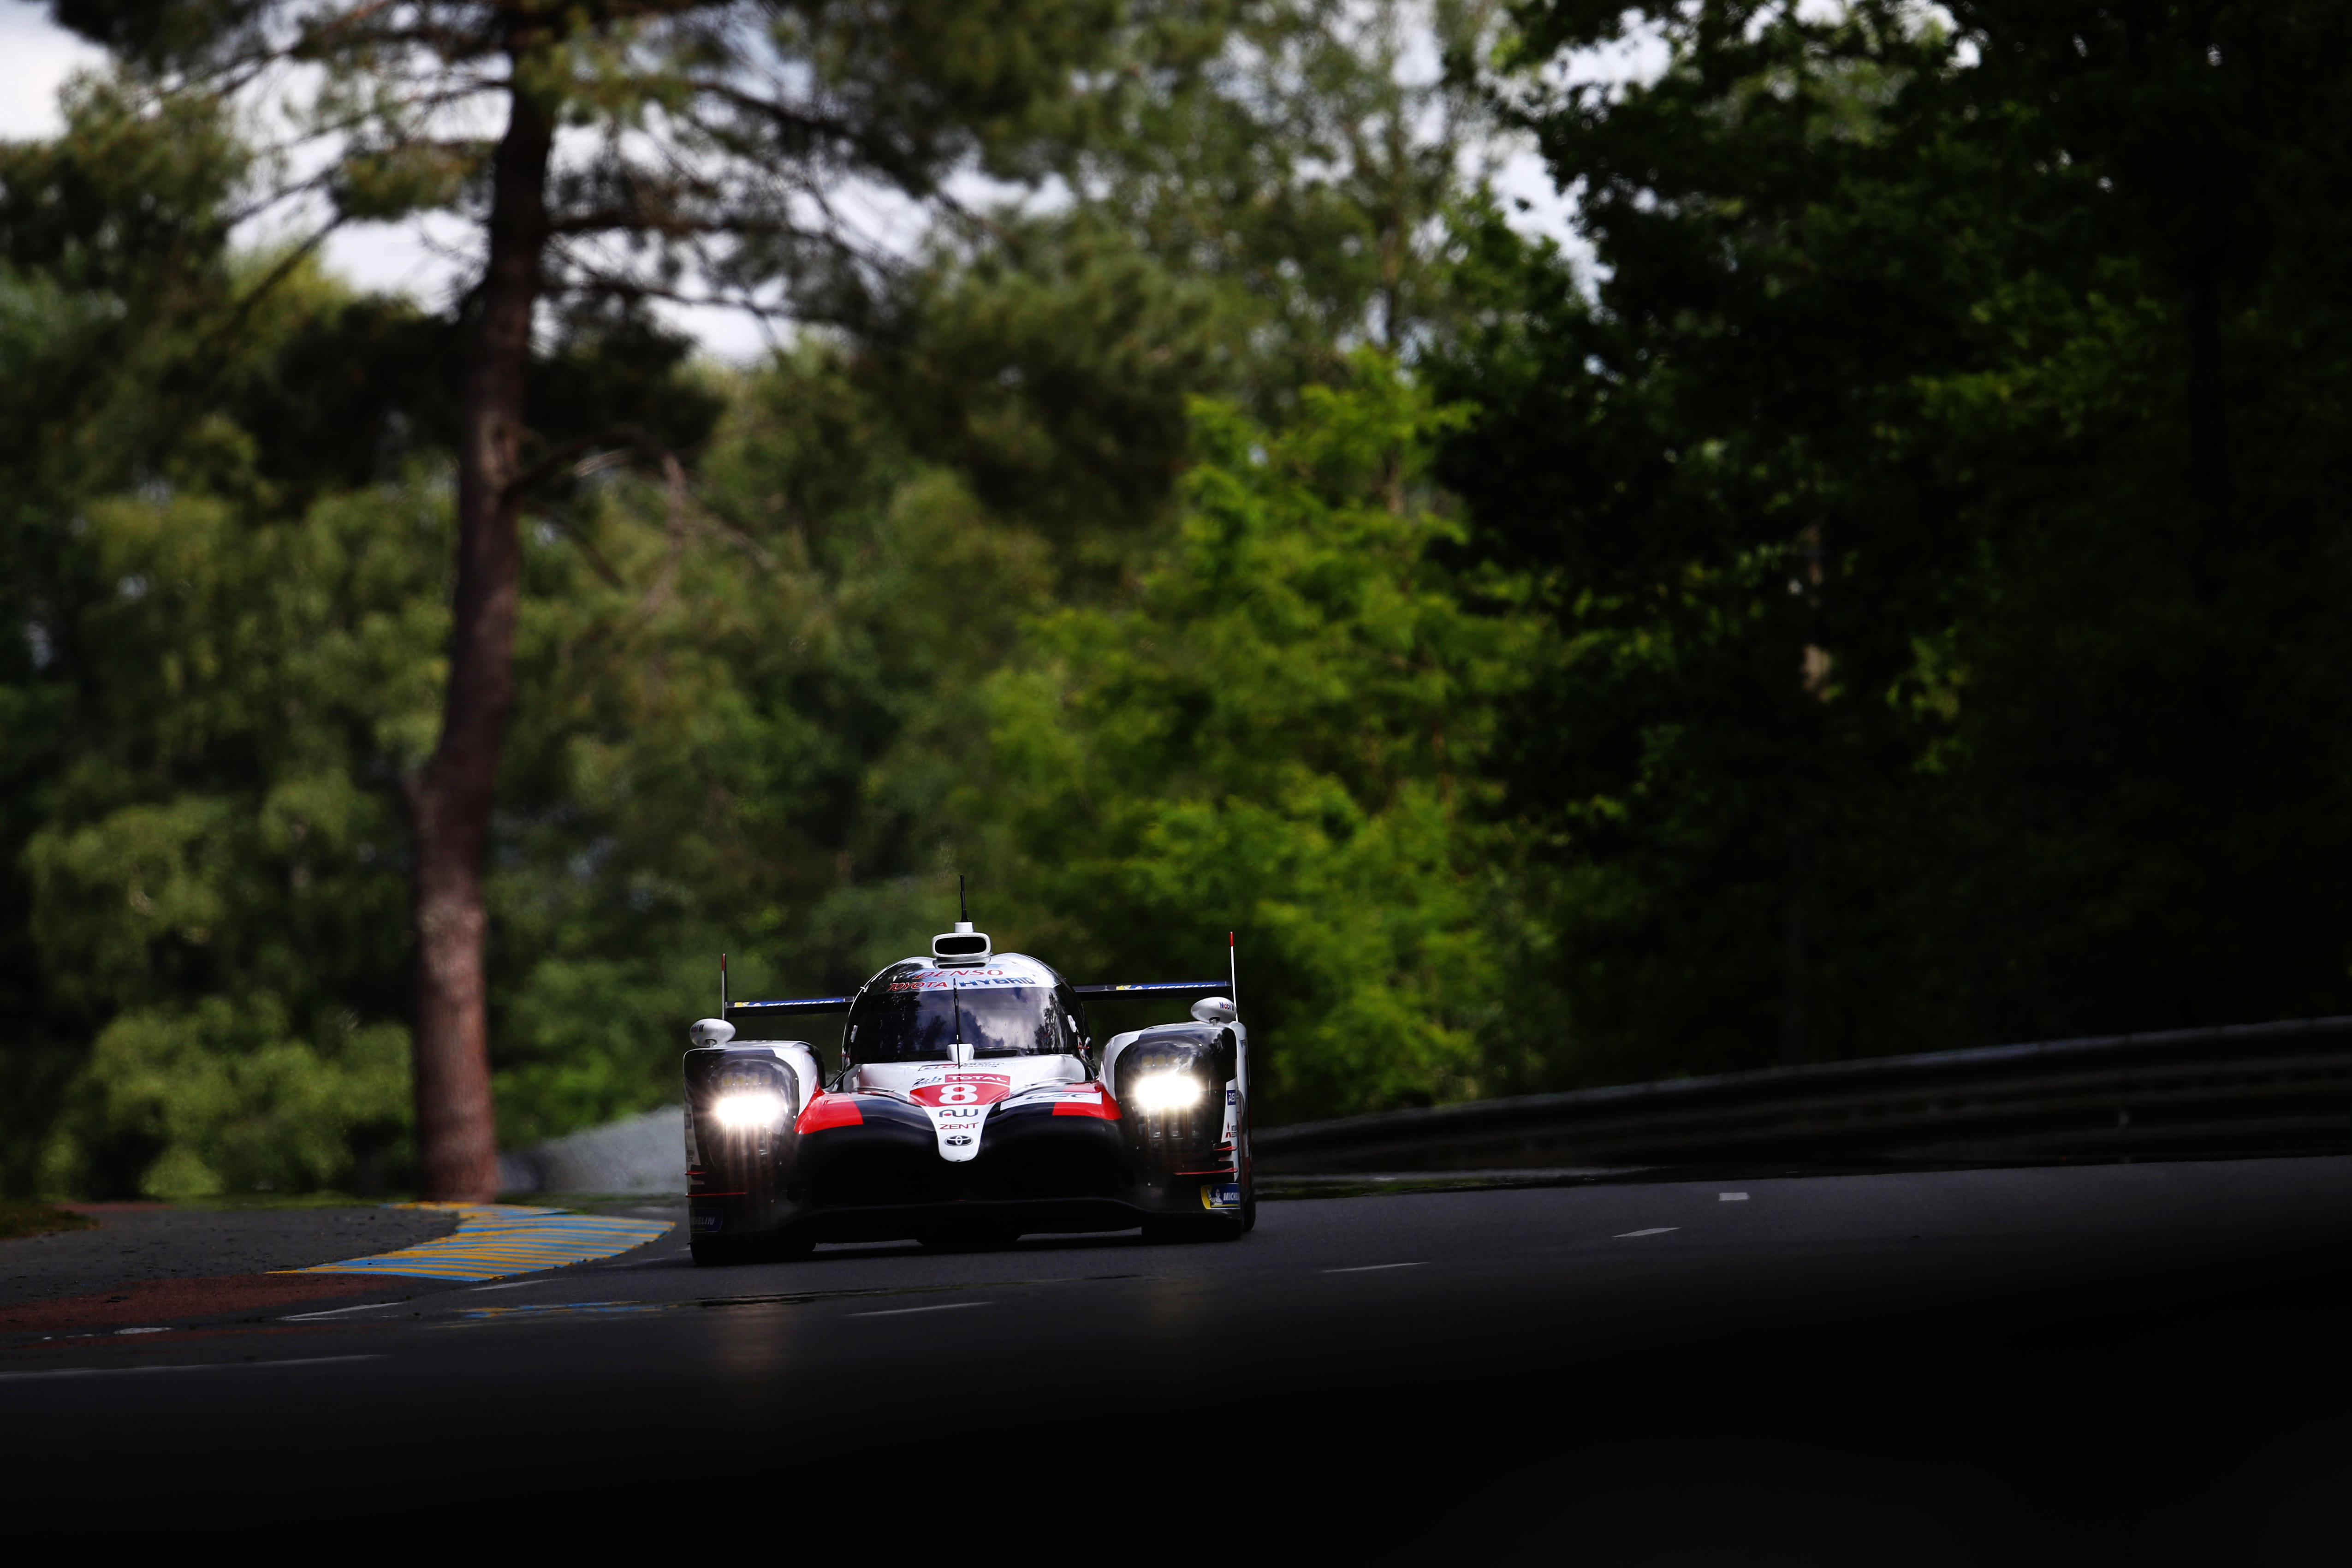 24 Hours of Le Mans - Practice and Qualifying